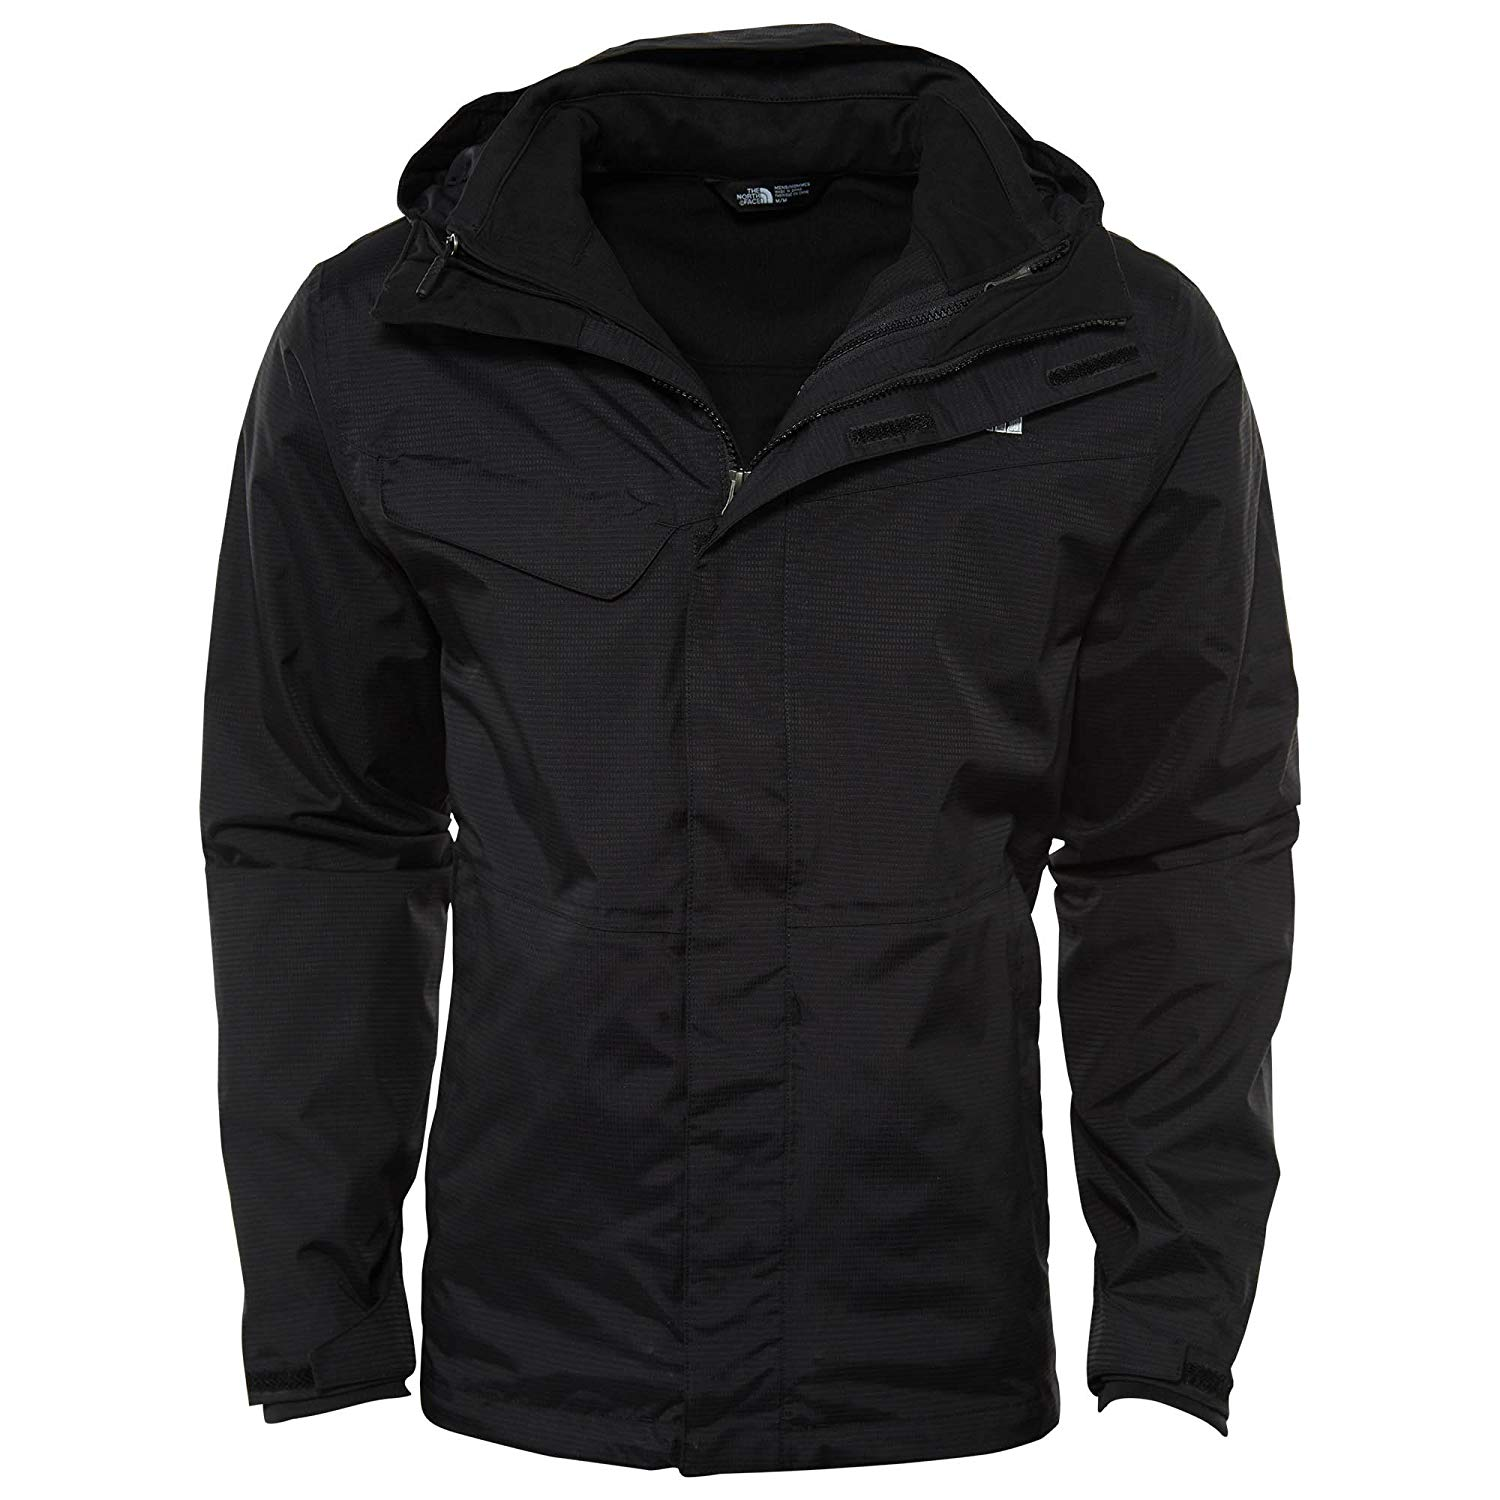 473958ff8 Cheap The North Face Triclimate, find The North Face Triclimate ...